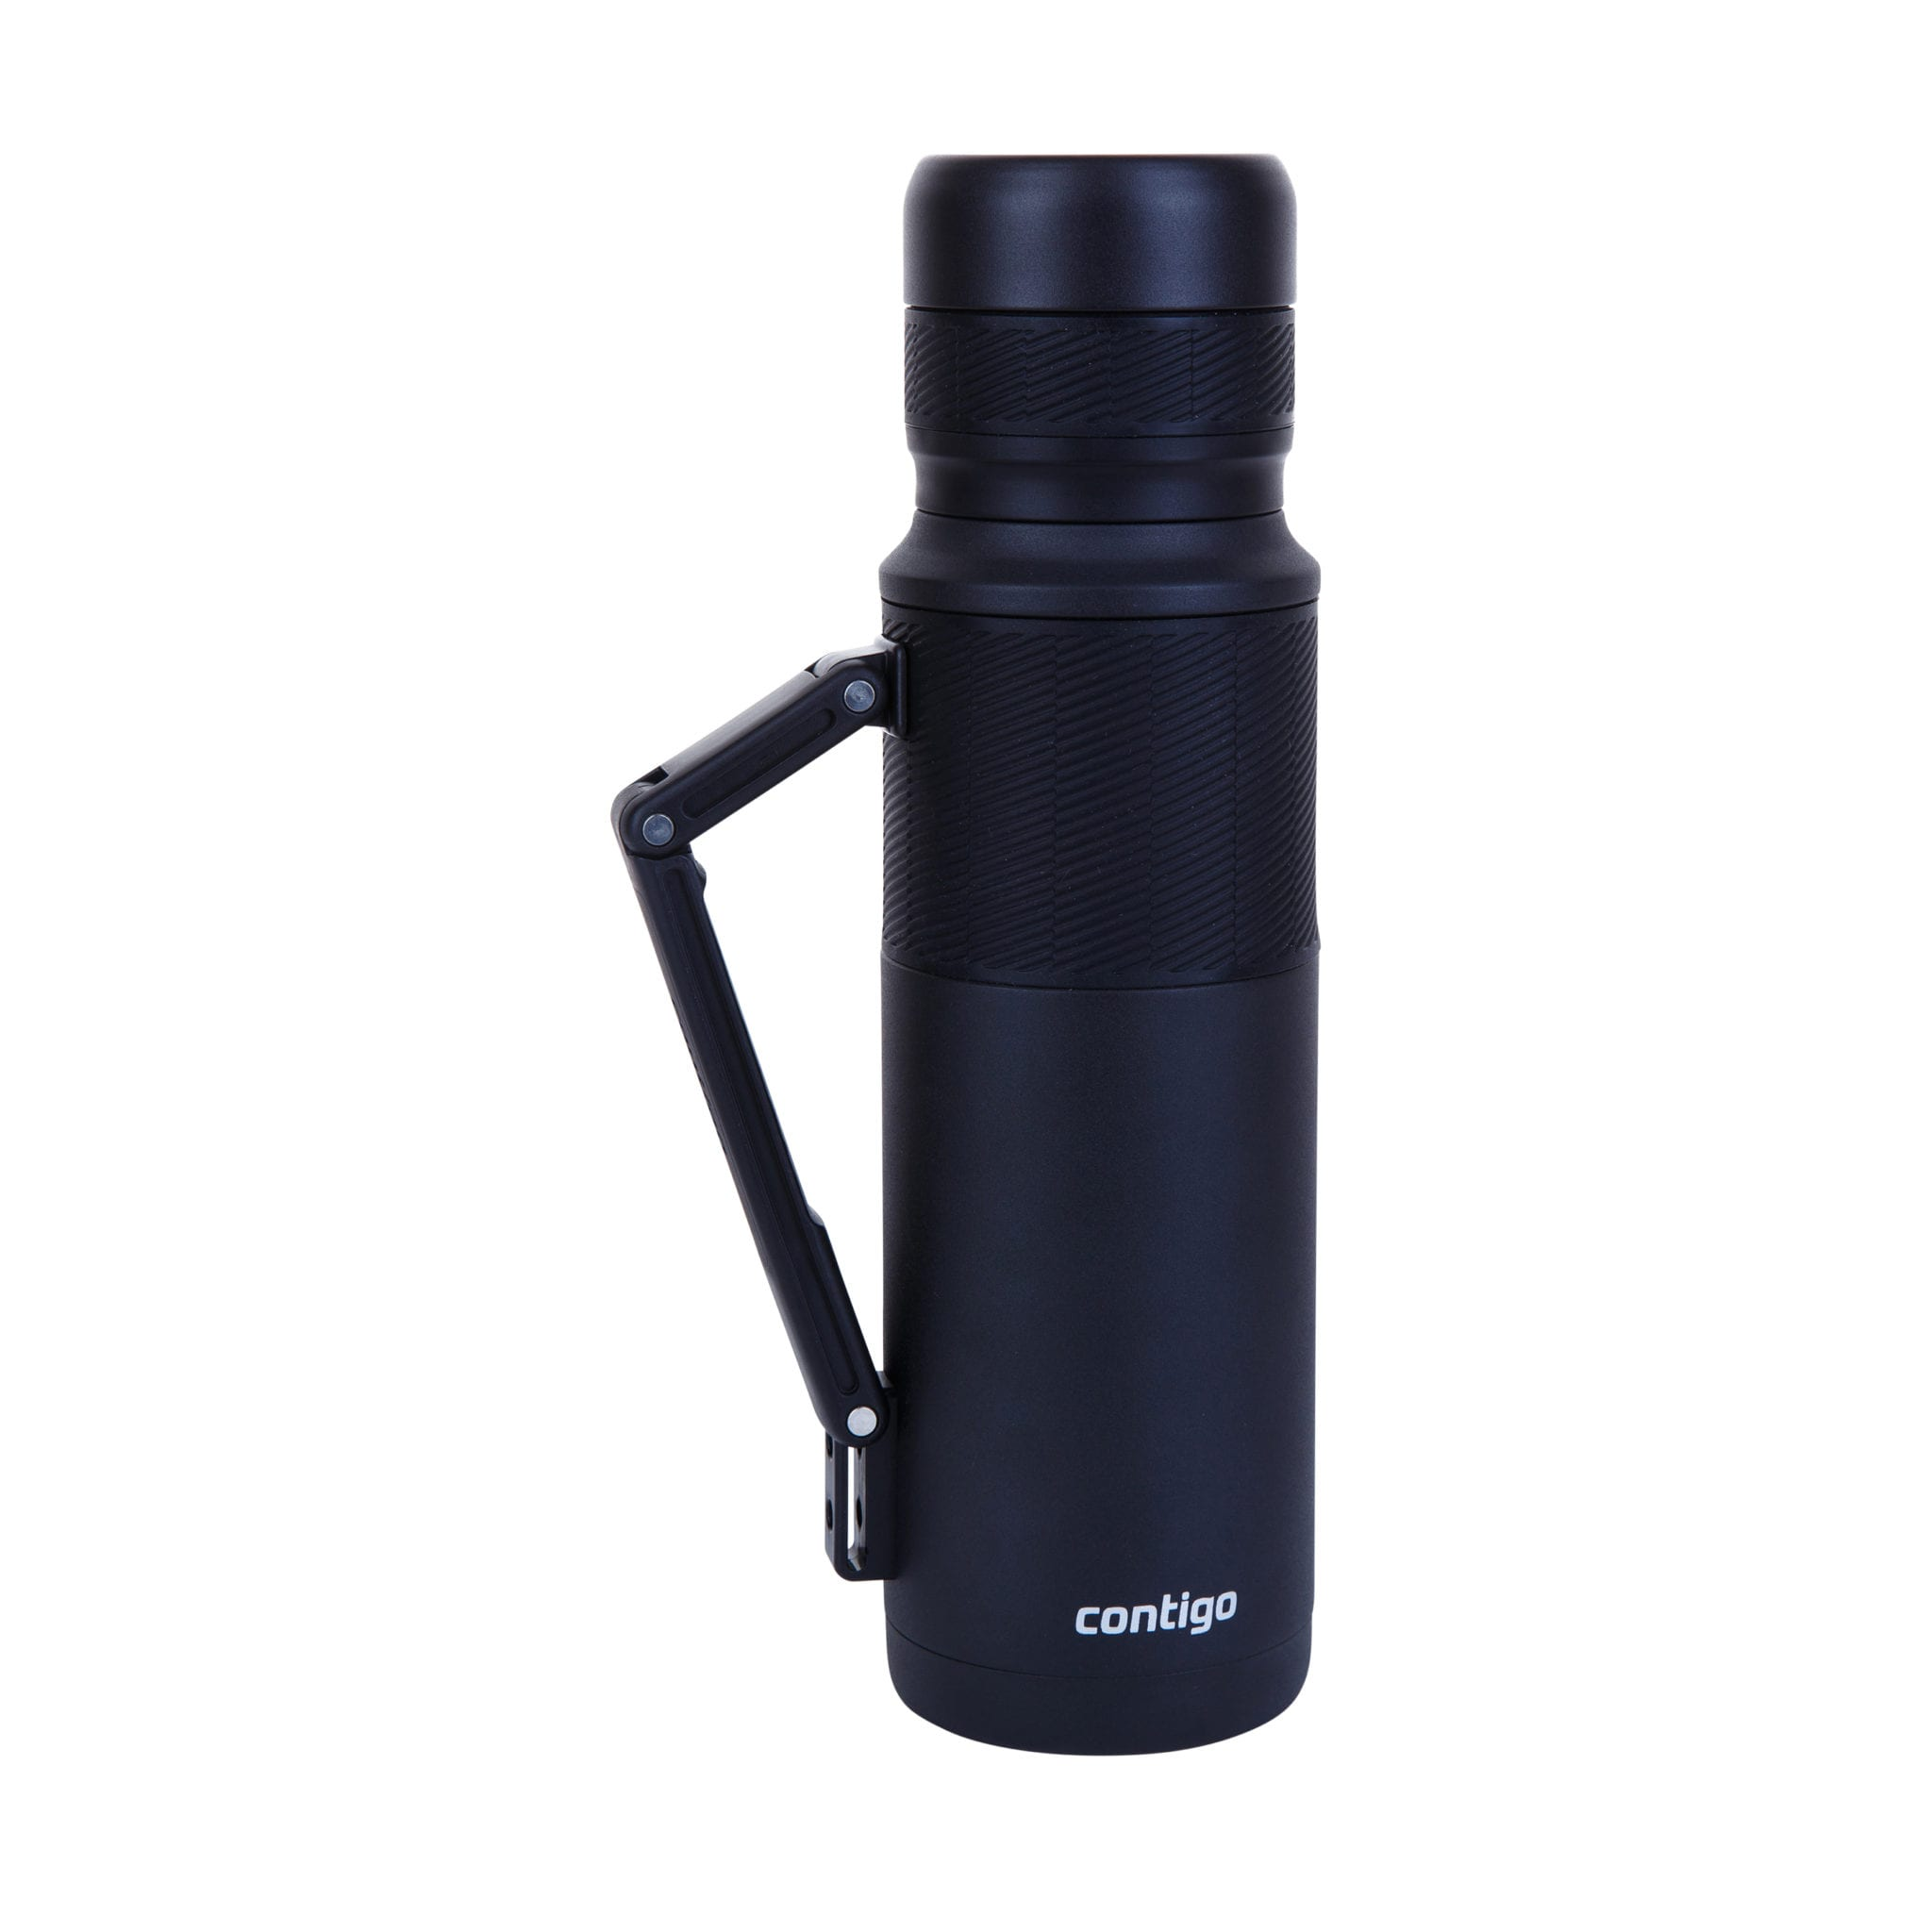 Promotional Contigo 1200 Thermal Bottles black